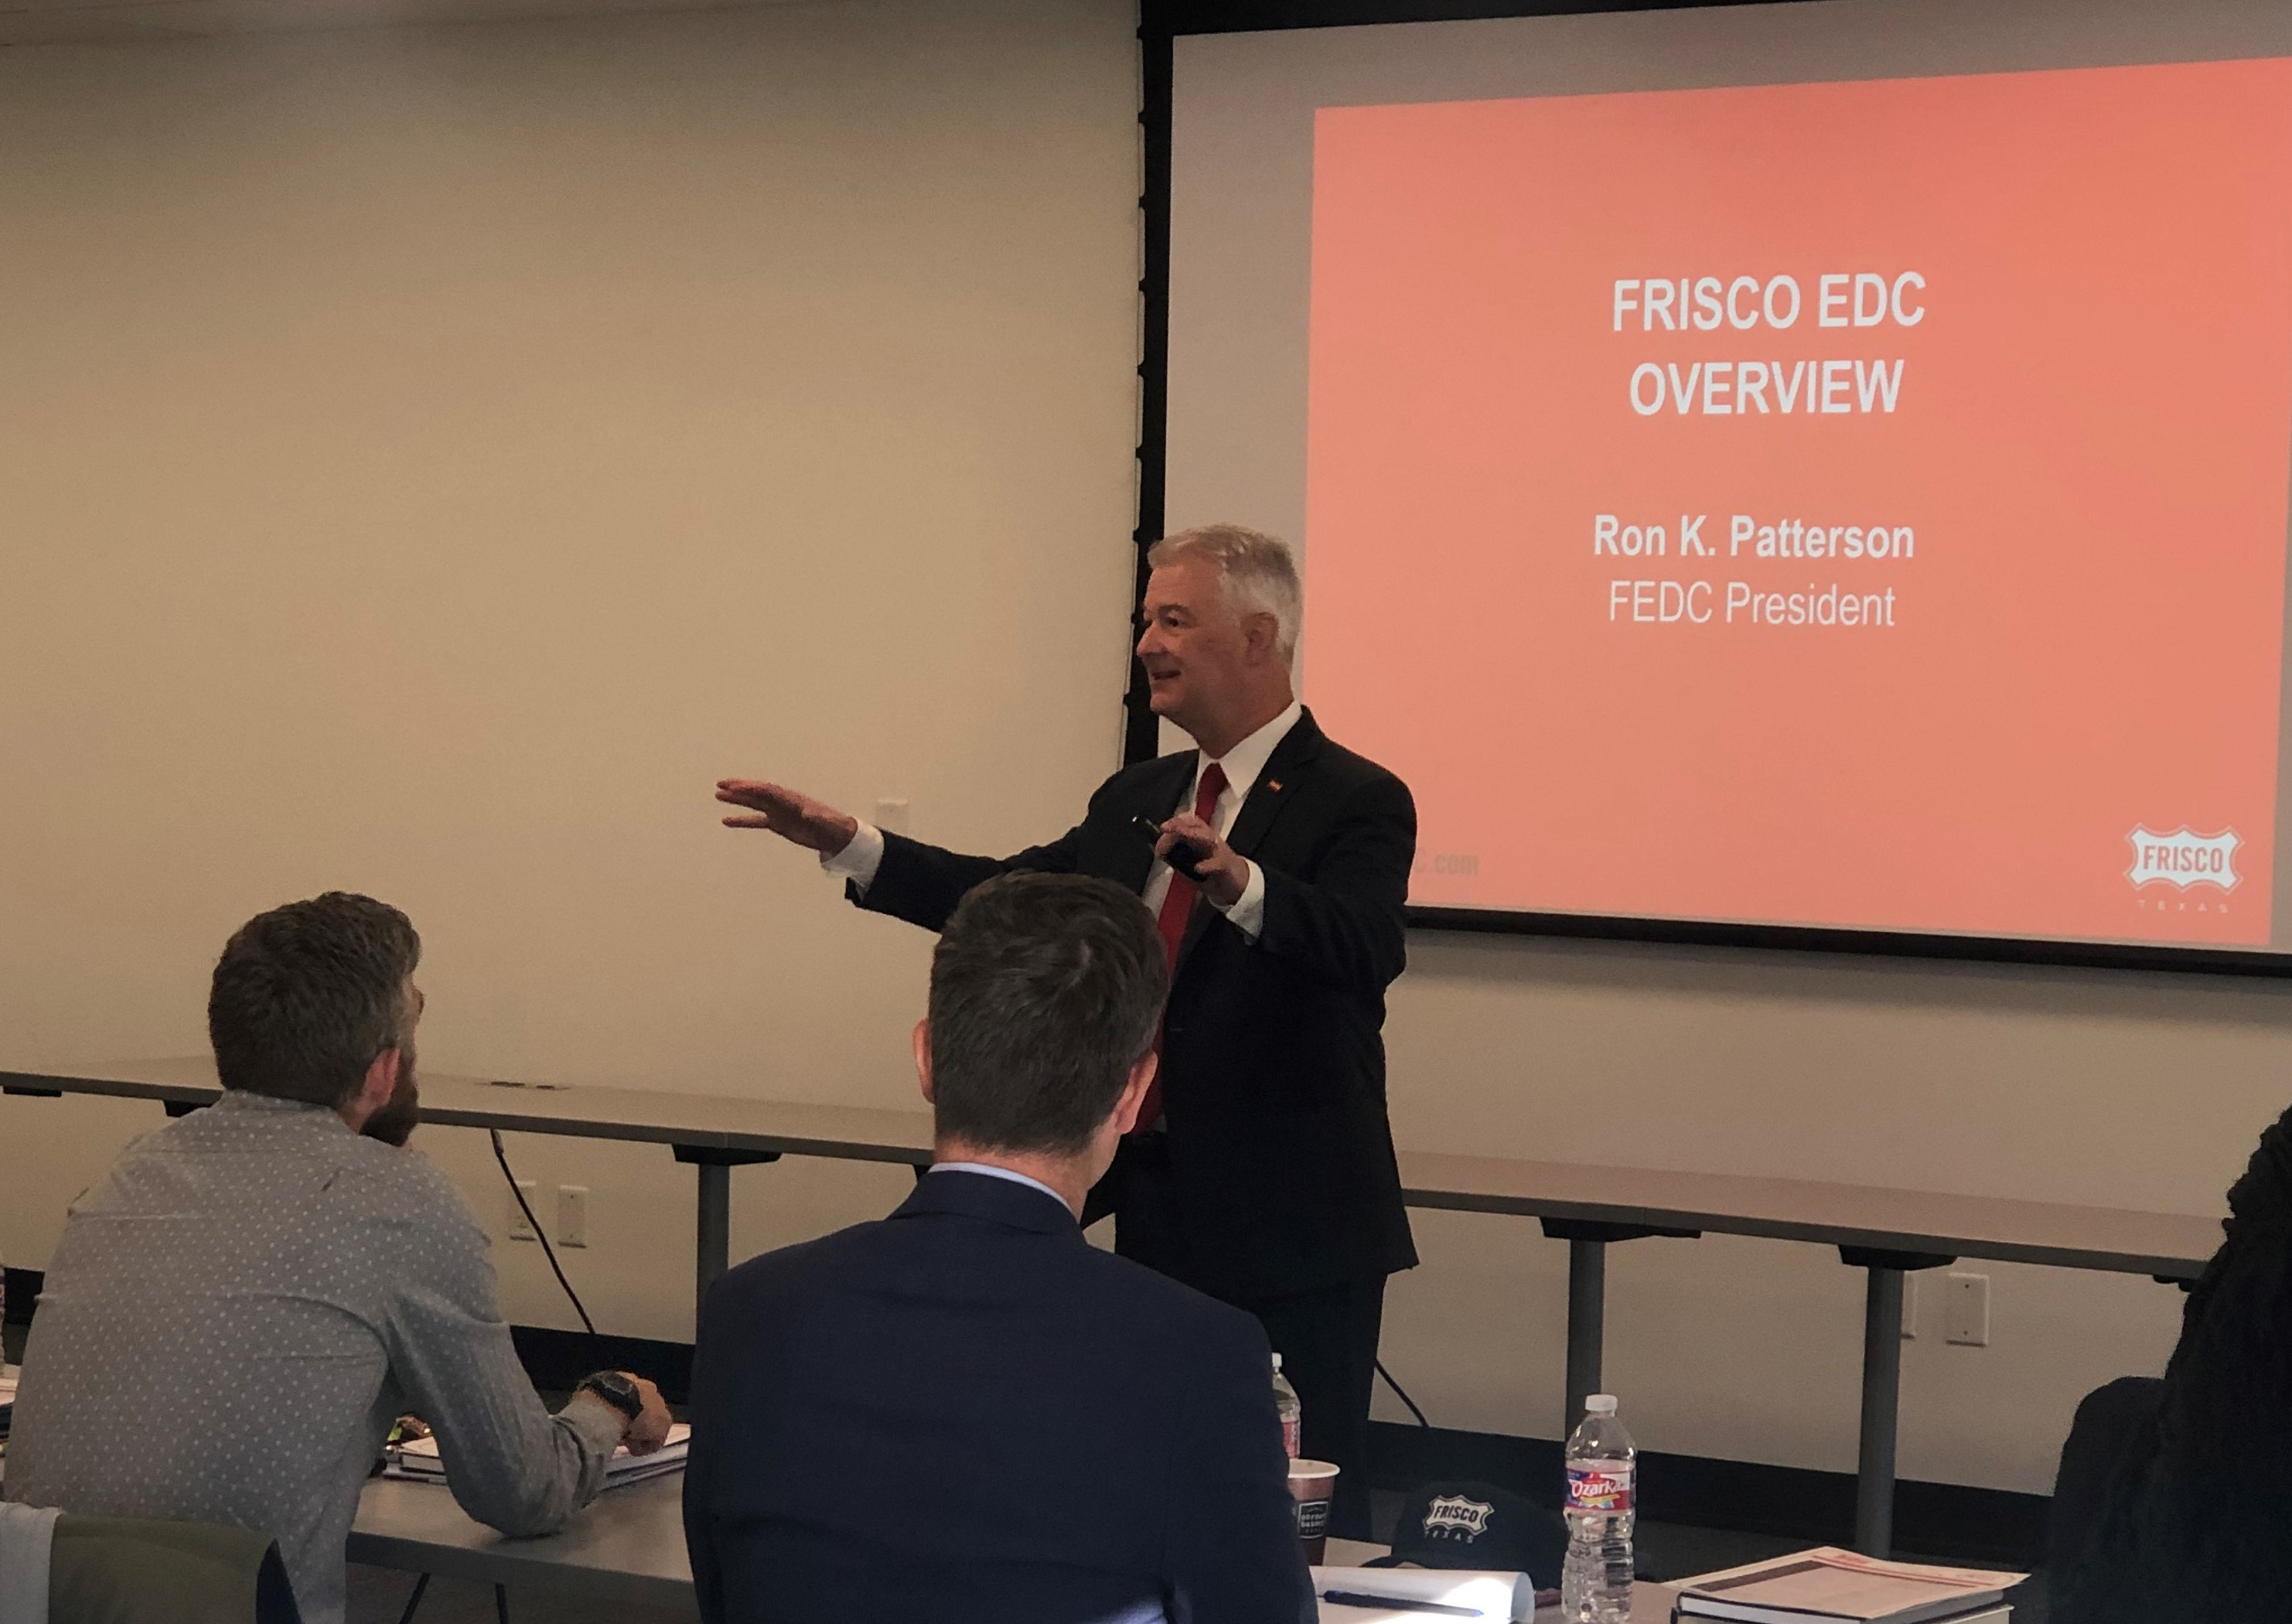 Frisco EDC President Ron Patterson speaks to a group in a classroom